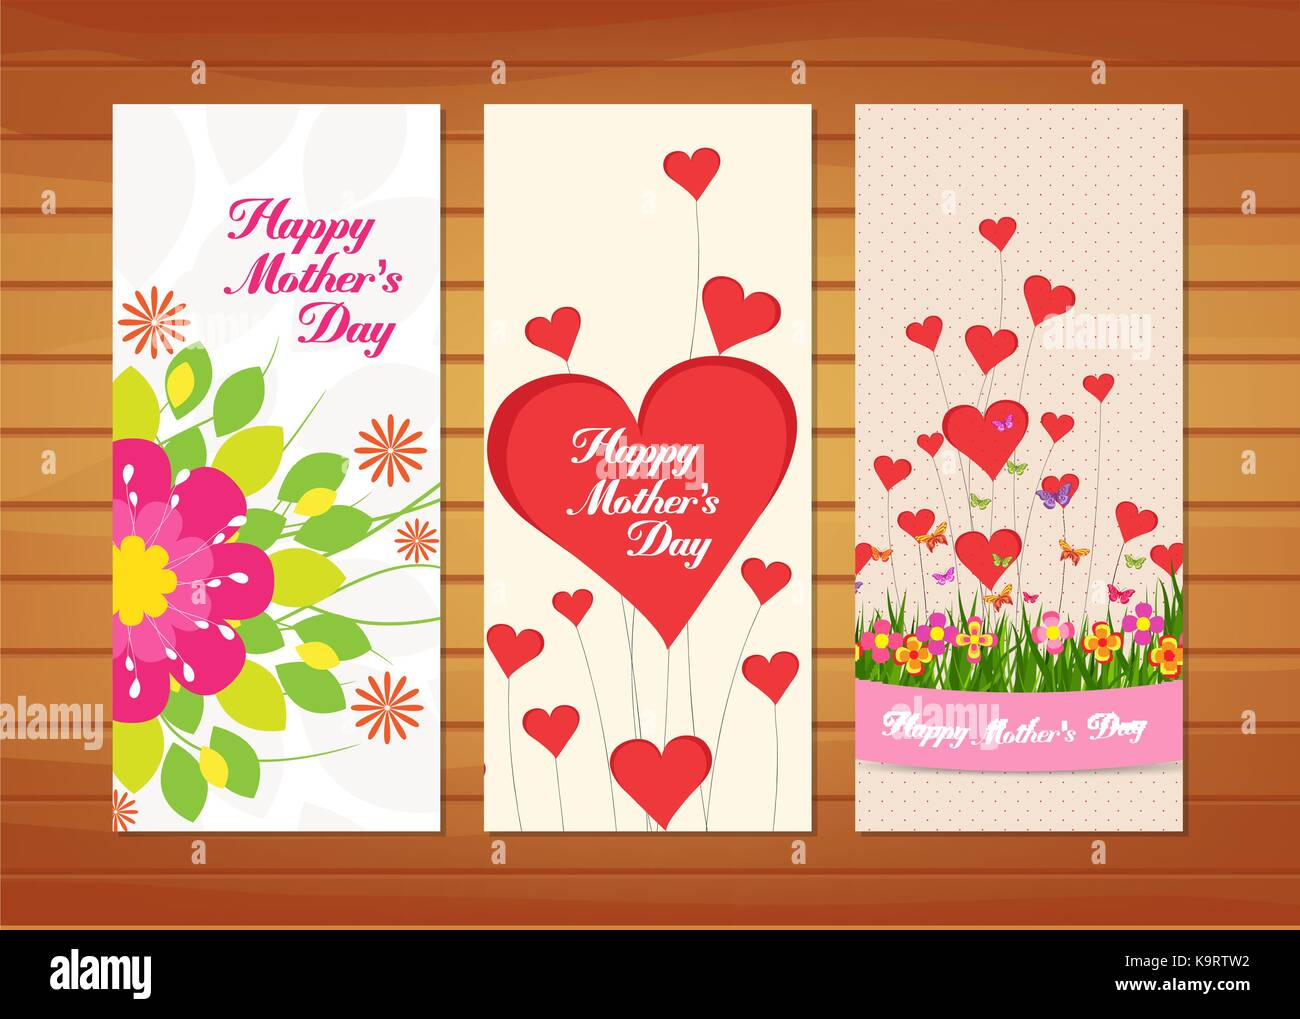 Floral Mother's Day Cards - Stock Vector